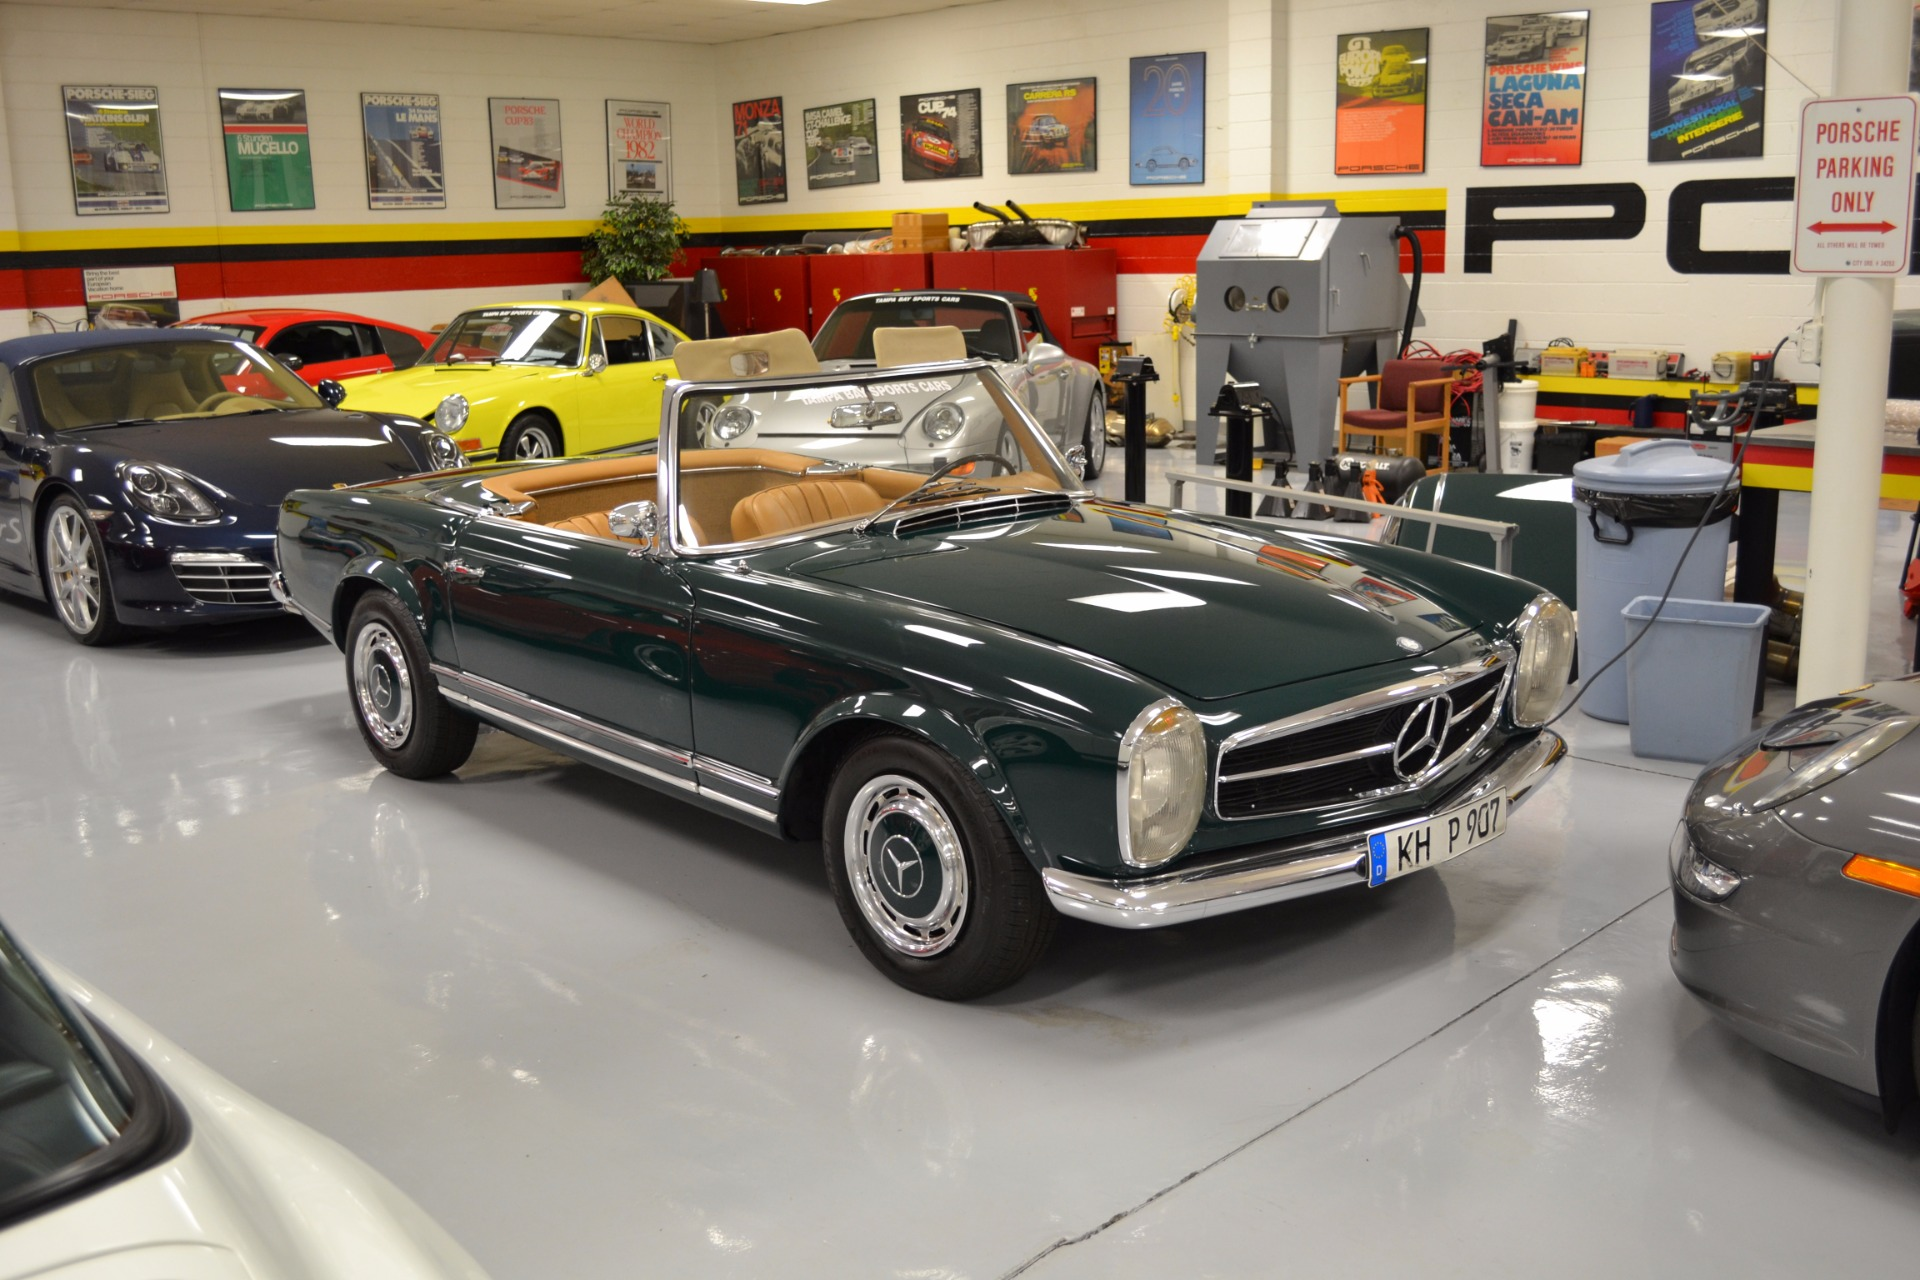 1967 Mercedes-Benz 250sl For Sale in Pinellas Park, FL 1149 | Tampa ...